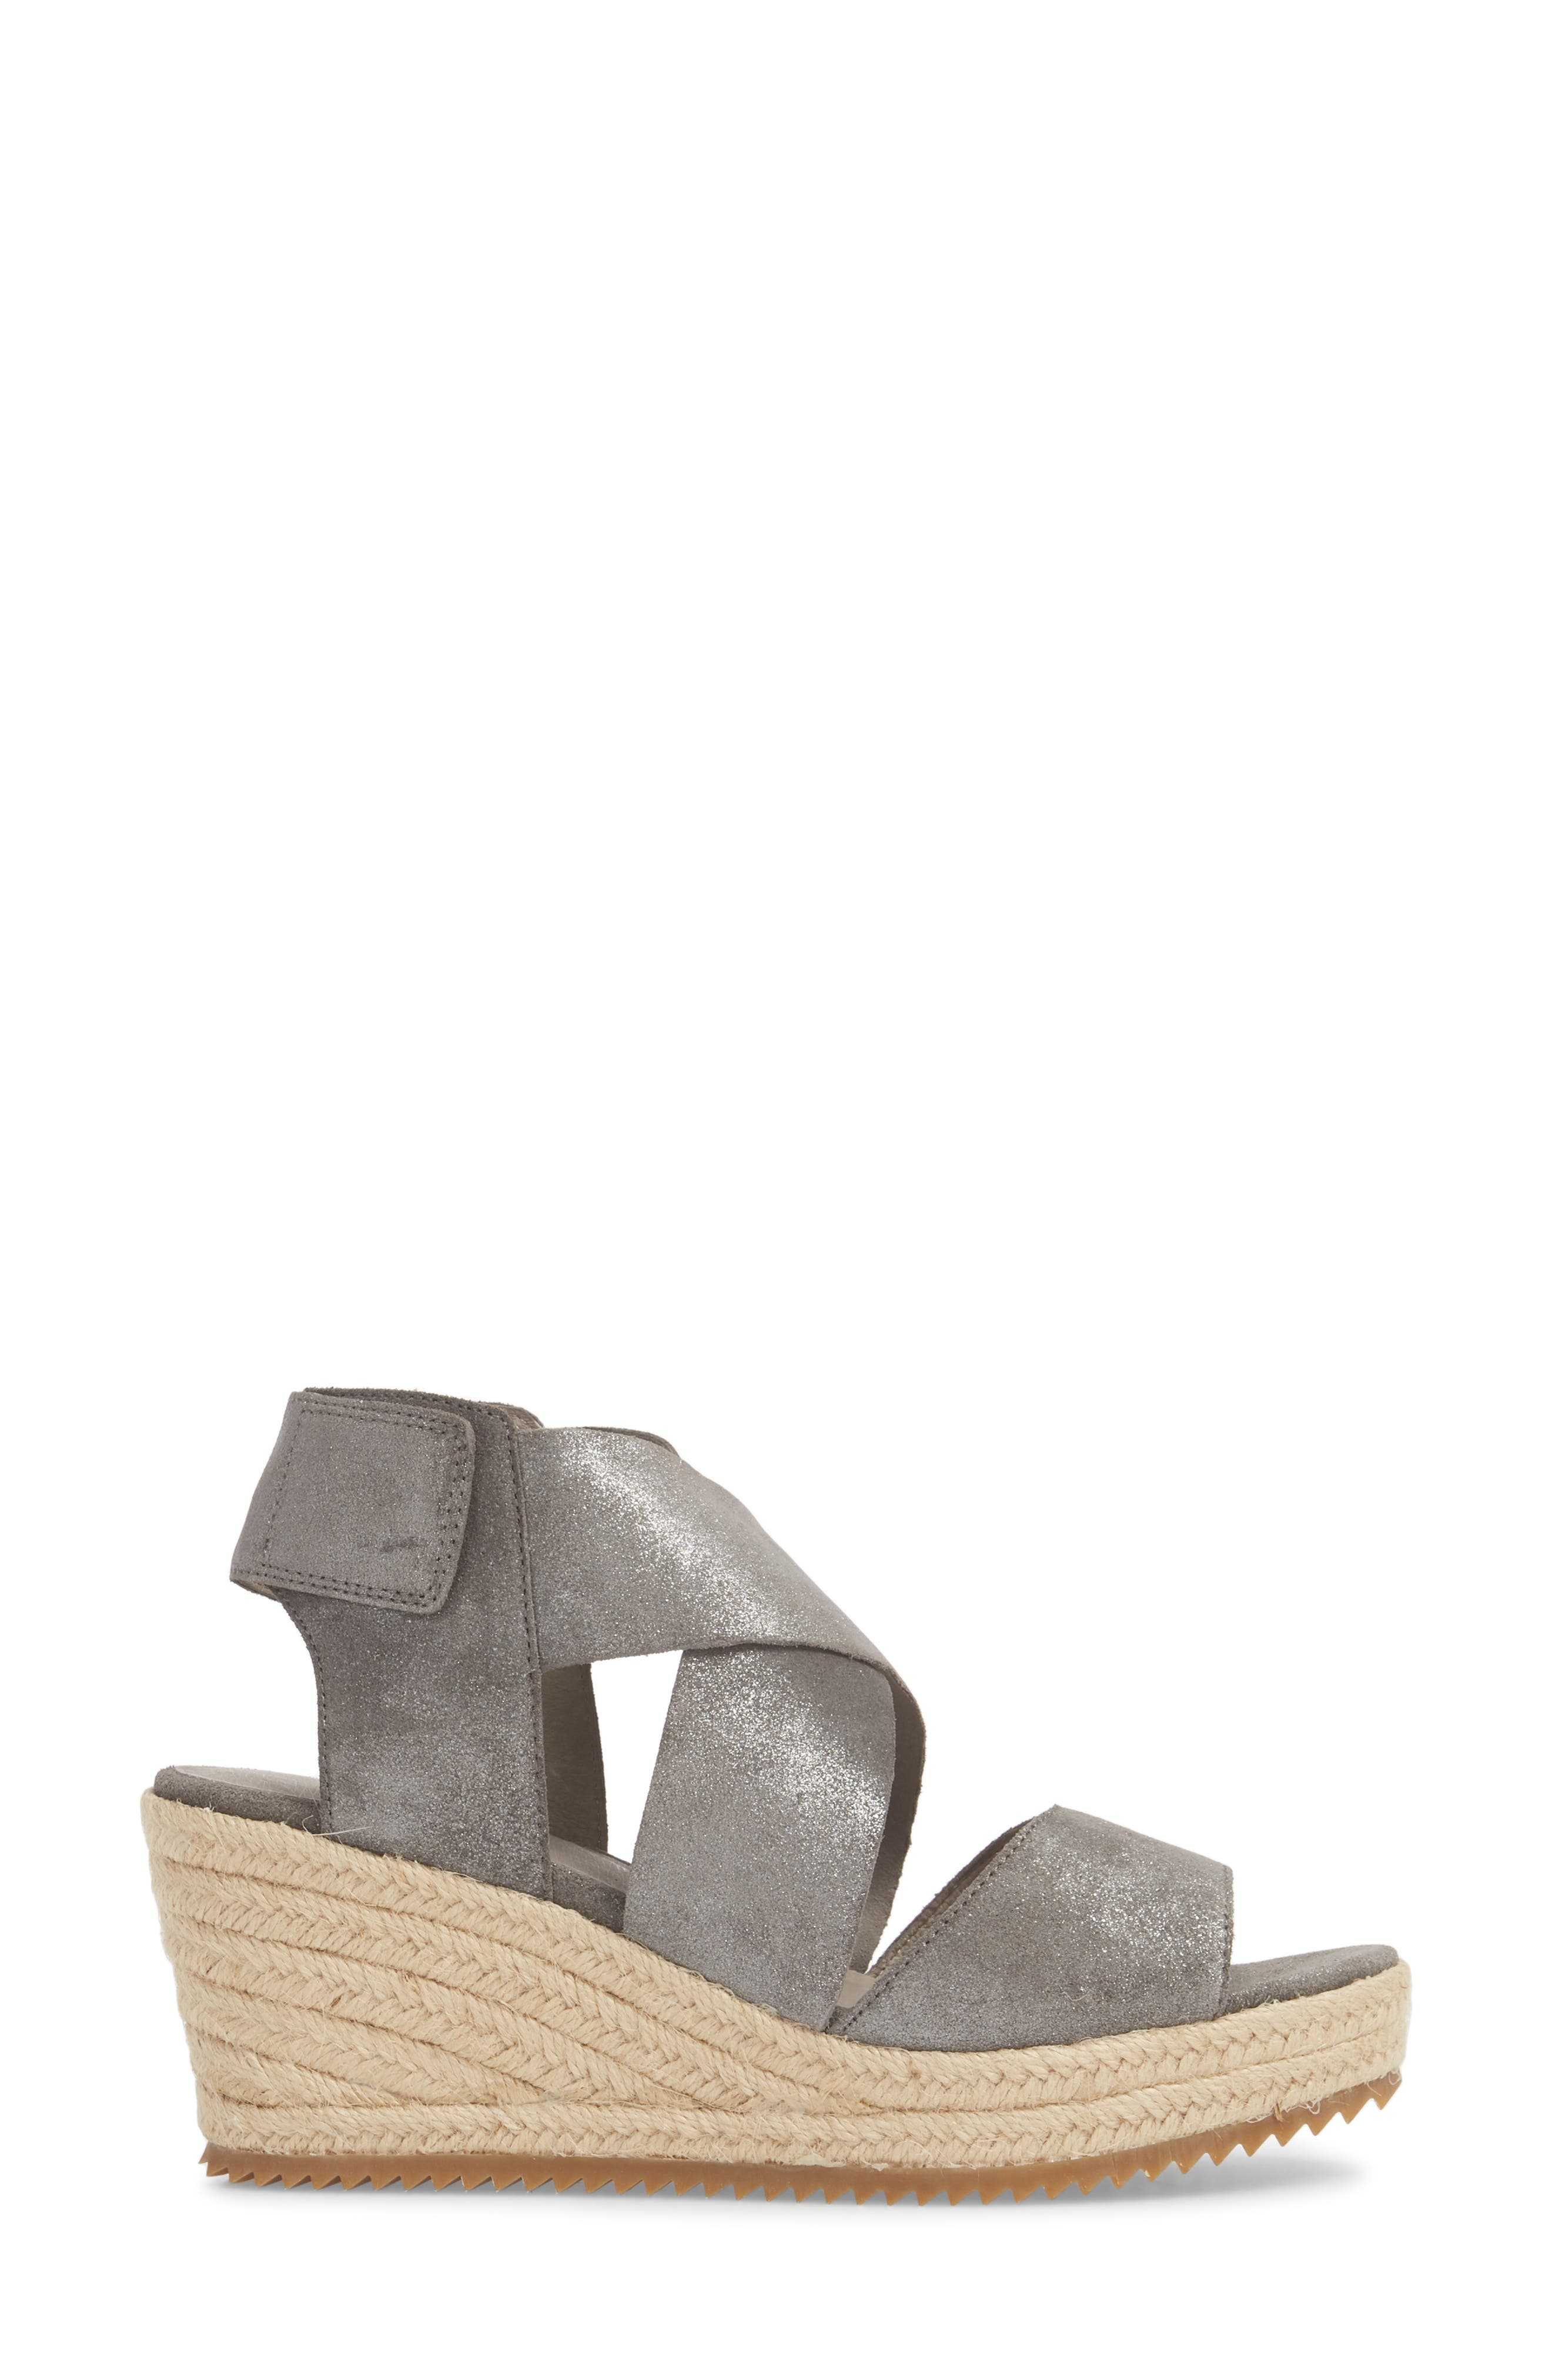 'Willow' Espadrille Wedge Sandal,                             Alternate thumbnail 3, color,                             Pewter Metallic Suede